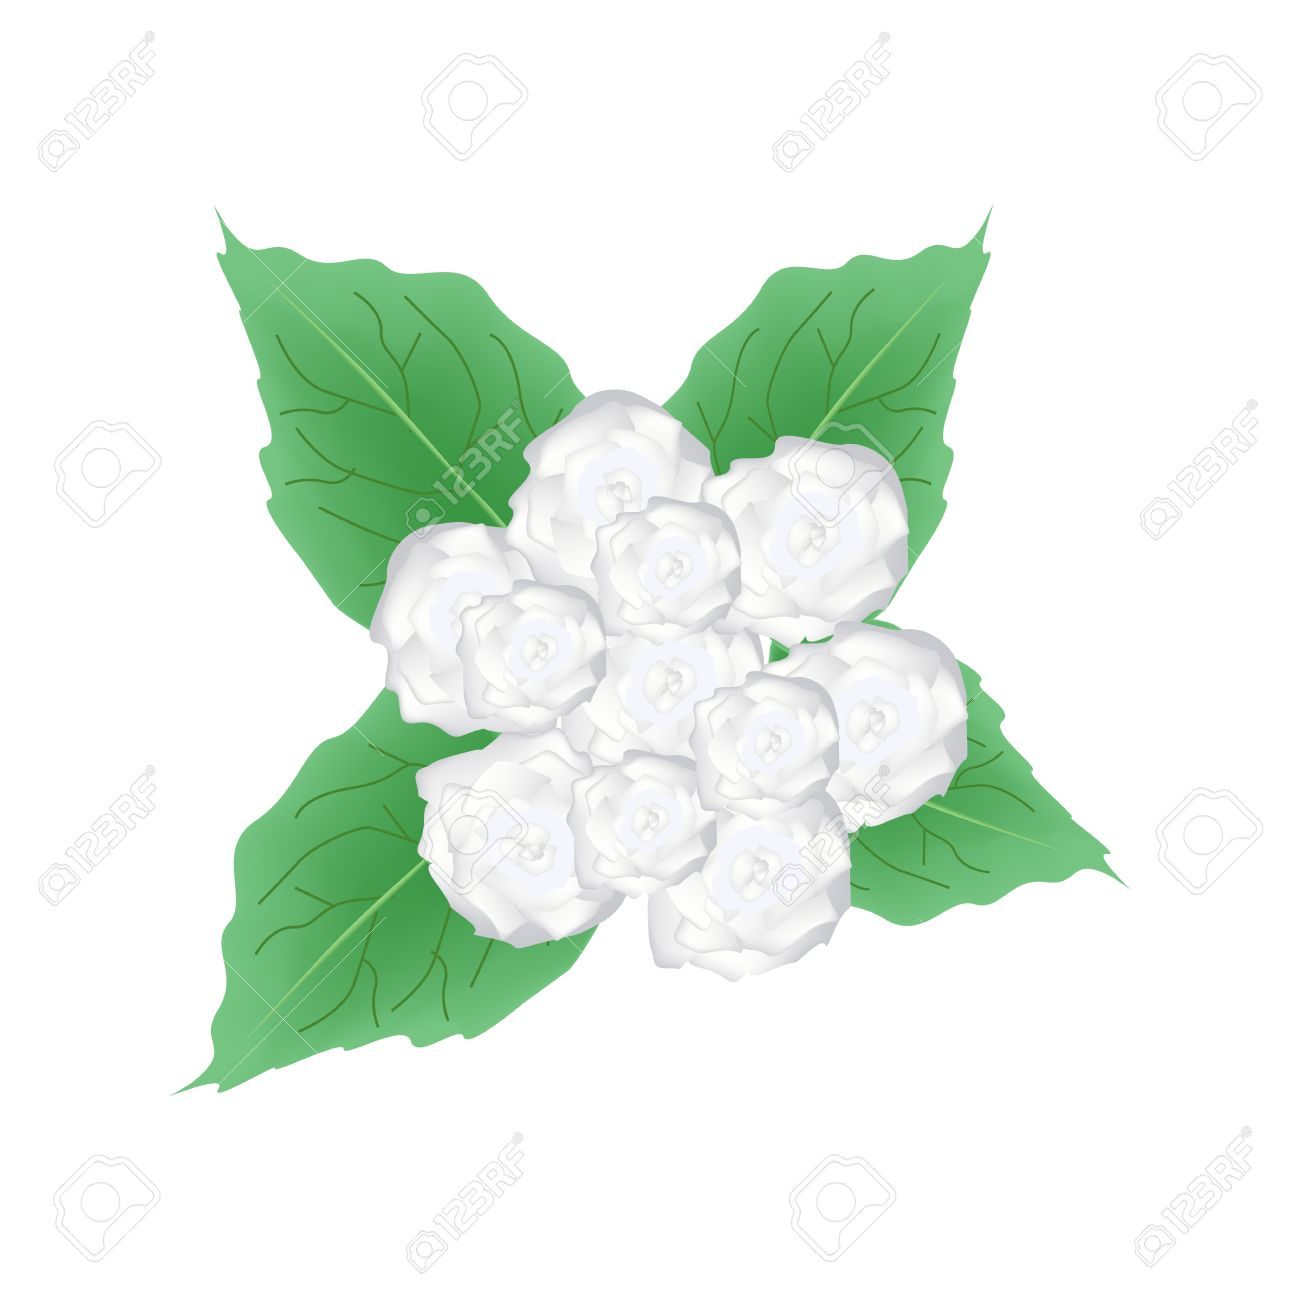 Illustration Of White Glory Bower Flowers Or Clerodendrum Chinense.